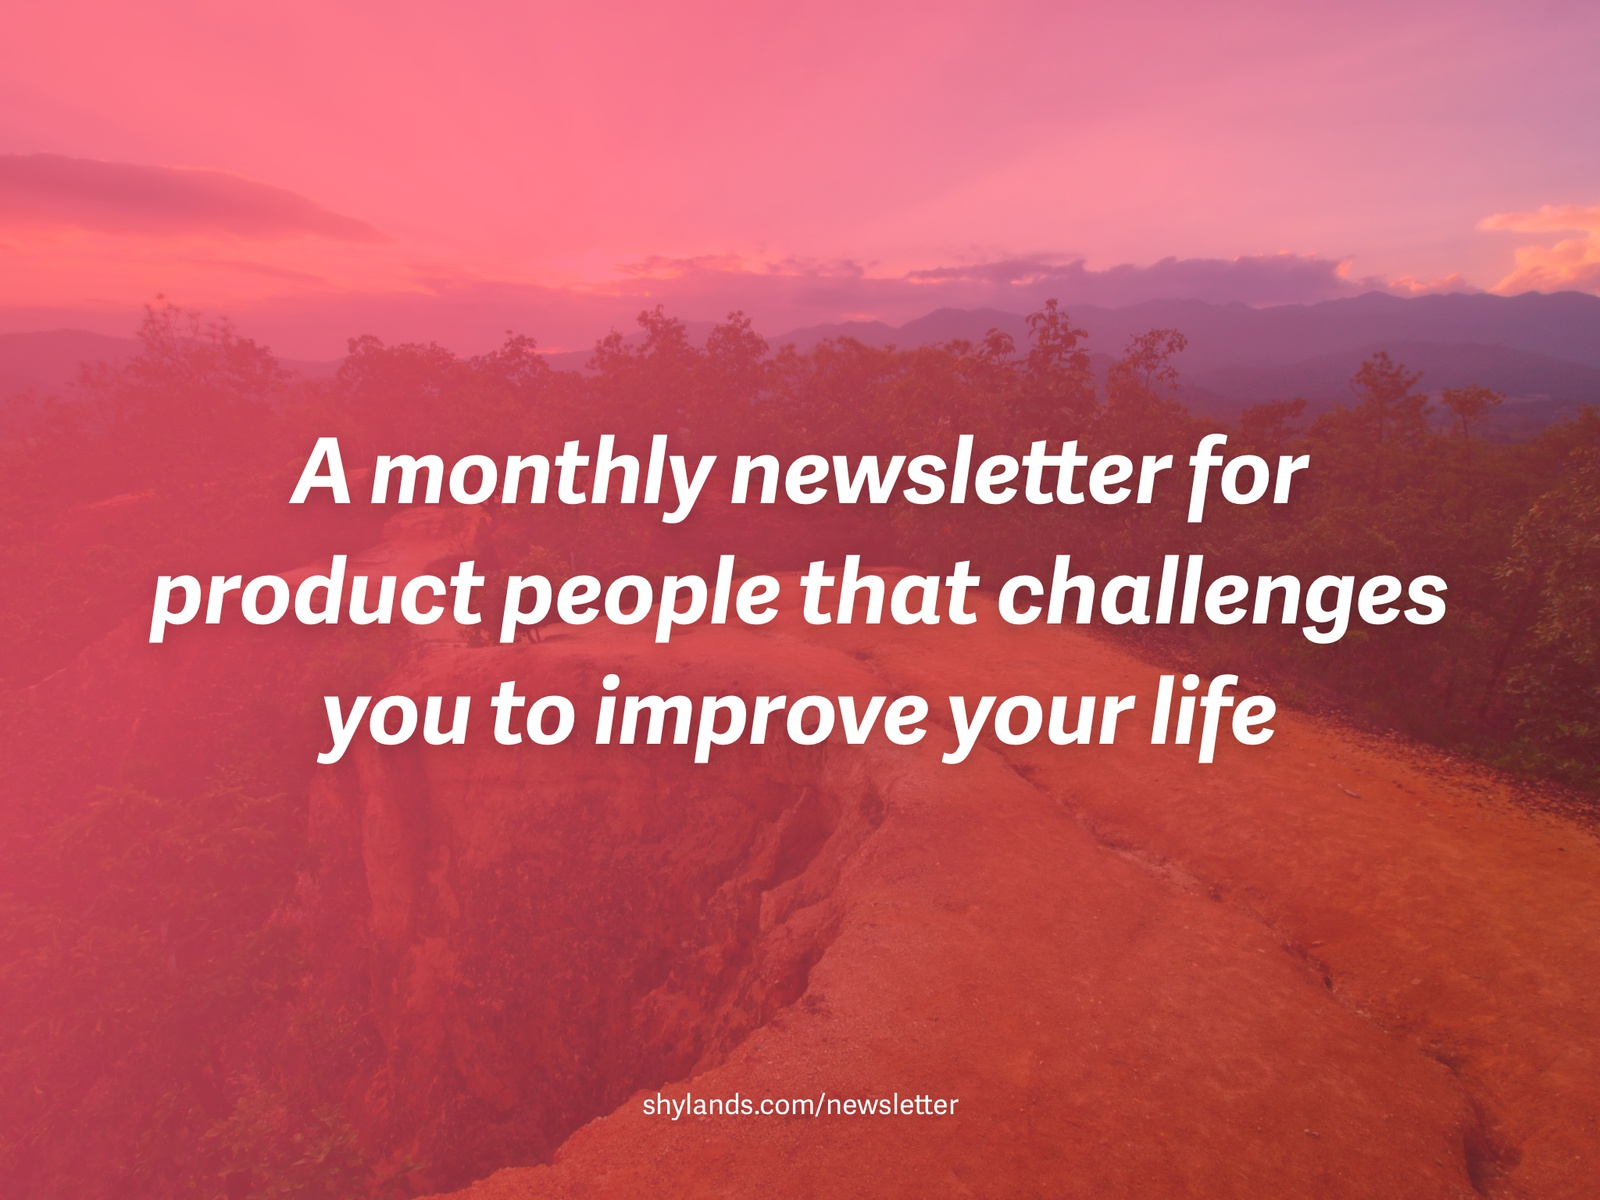 Improve your life improve challenge work contemplation product newsletter